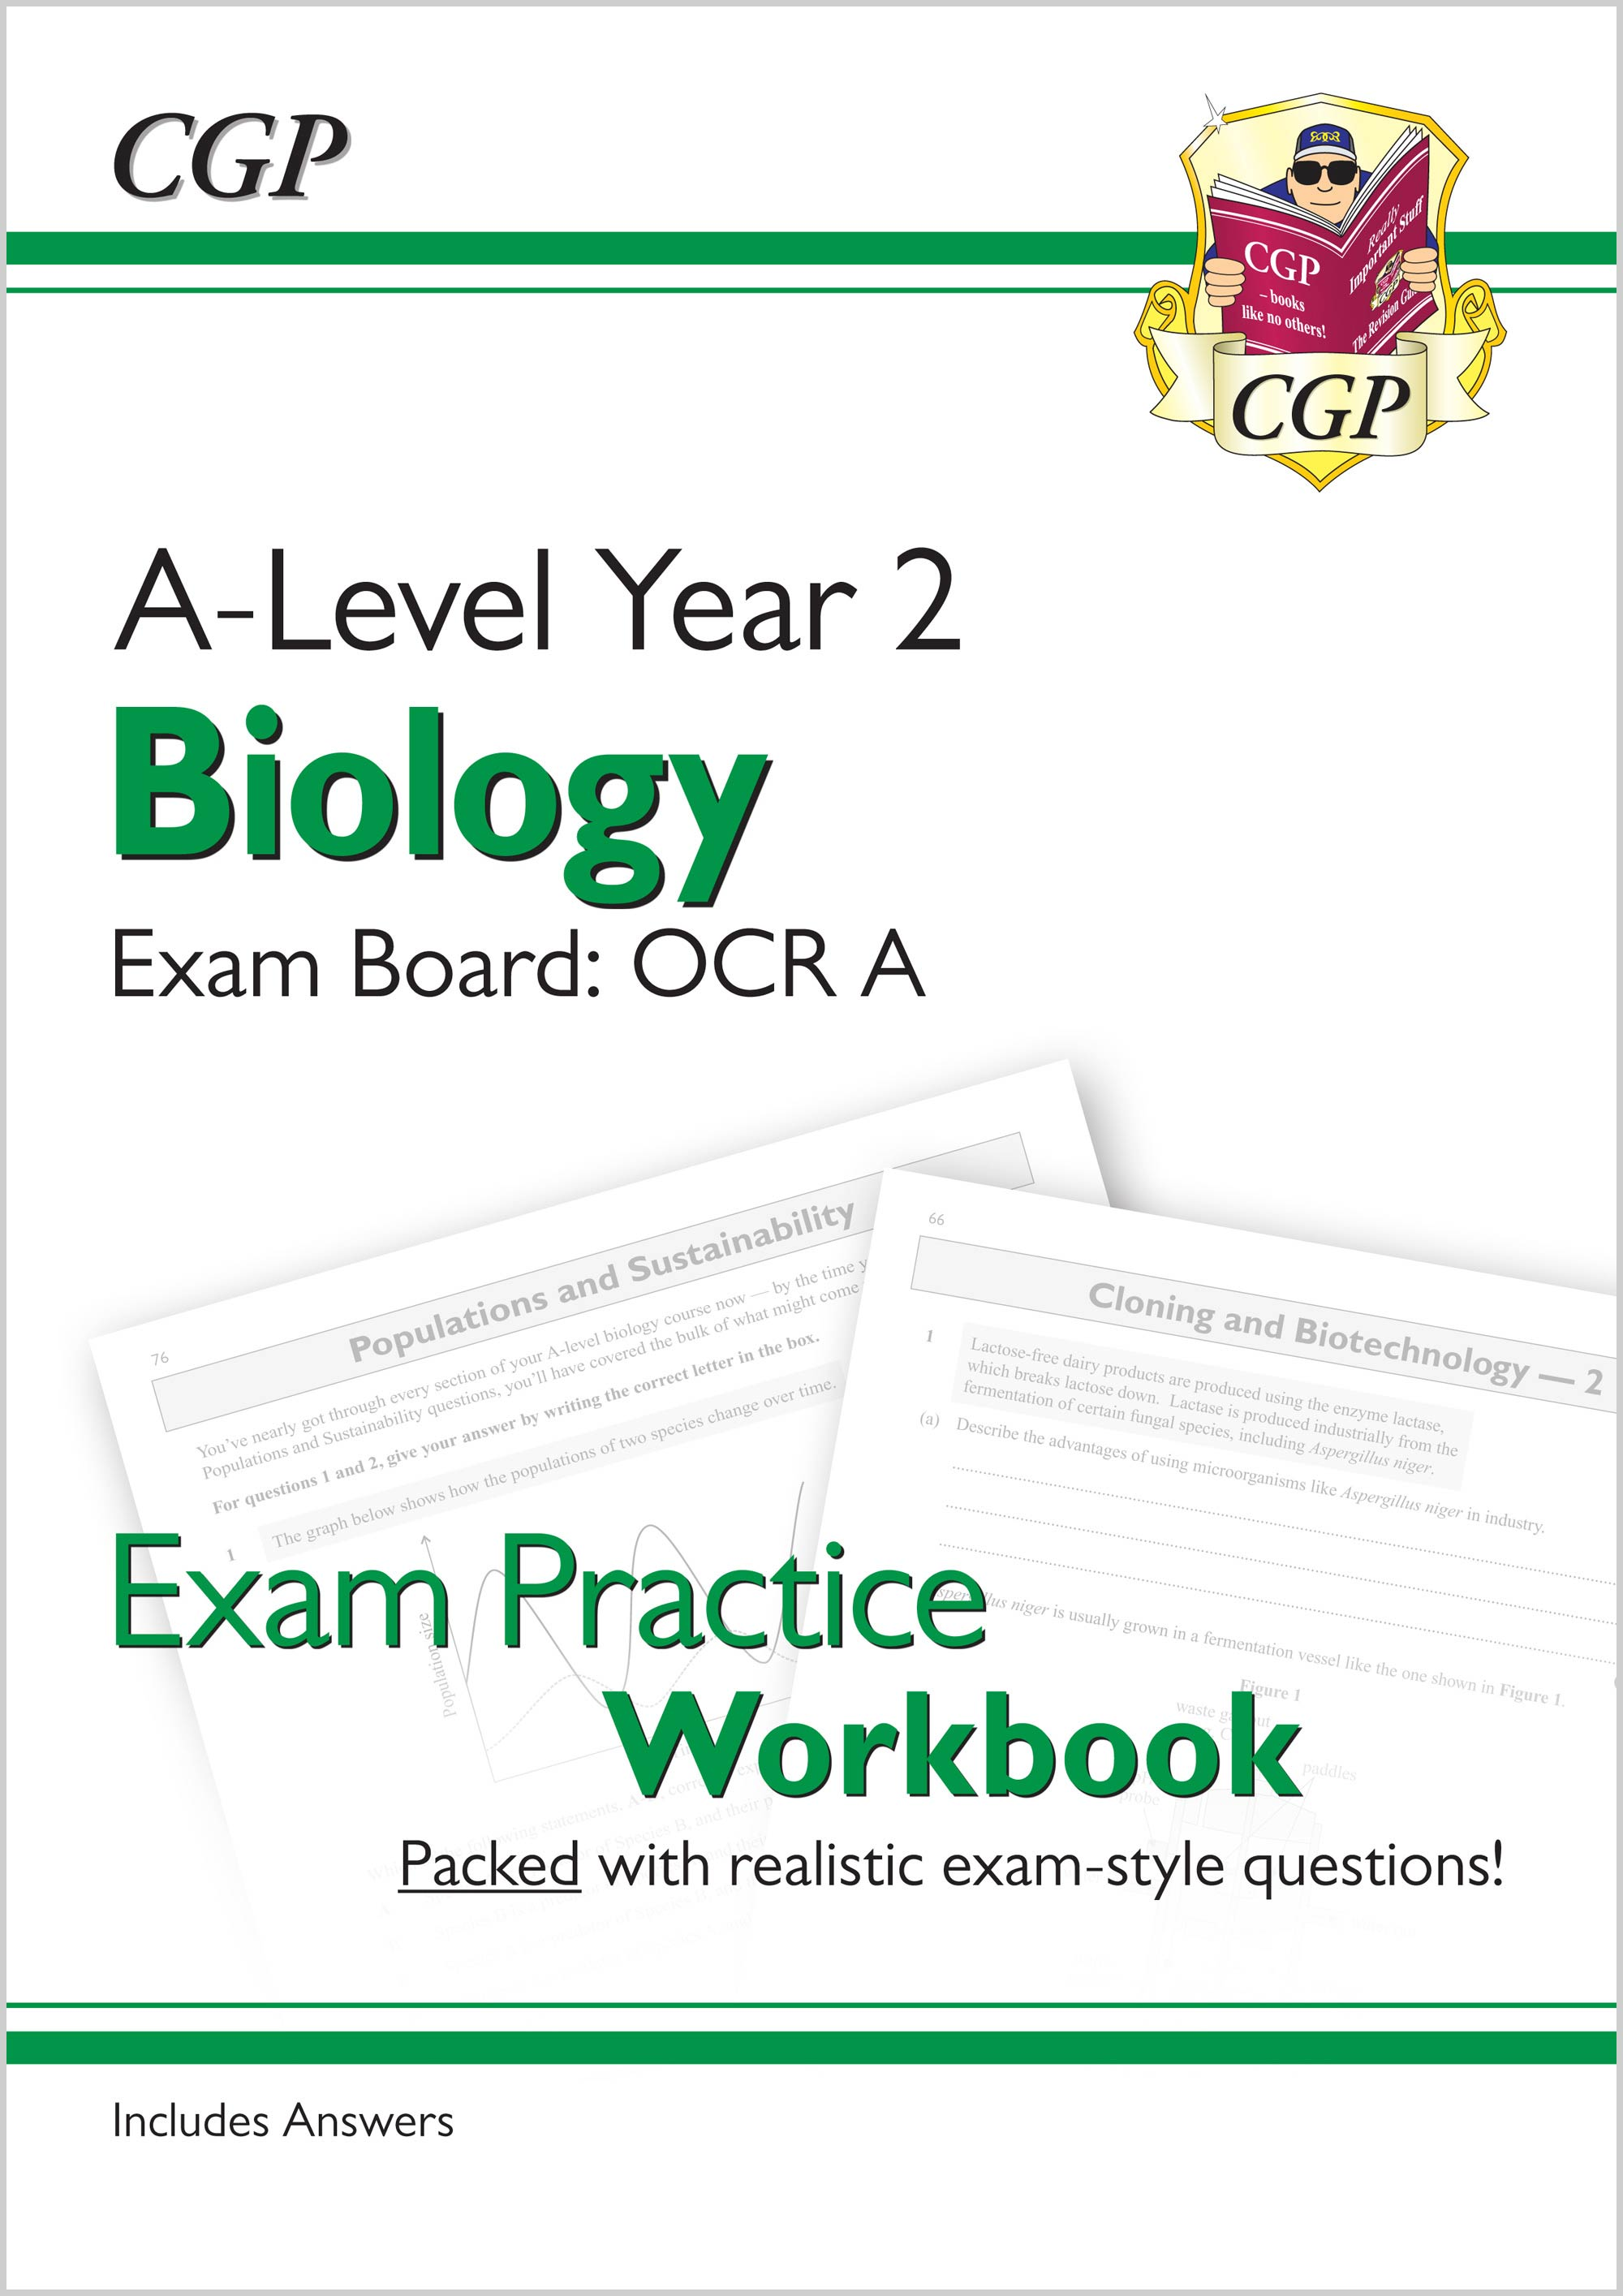 BRAQ61 - New A-Level Biology: OCR A Year 2 Exam Practice Workbook - includes Answers